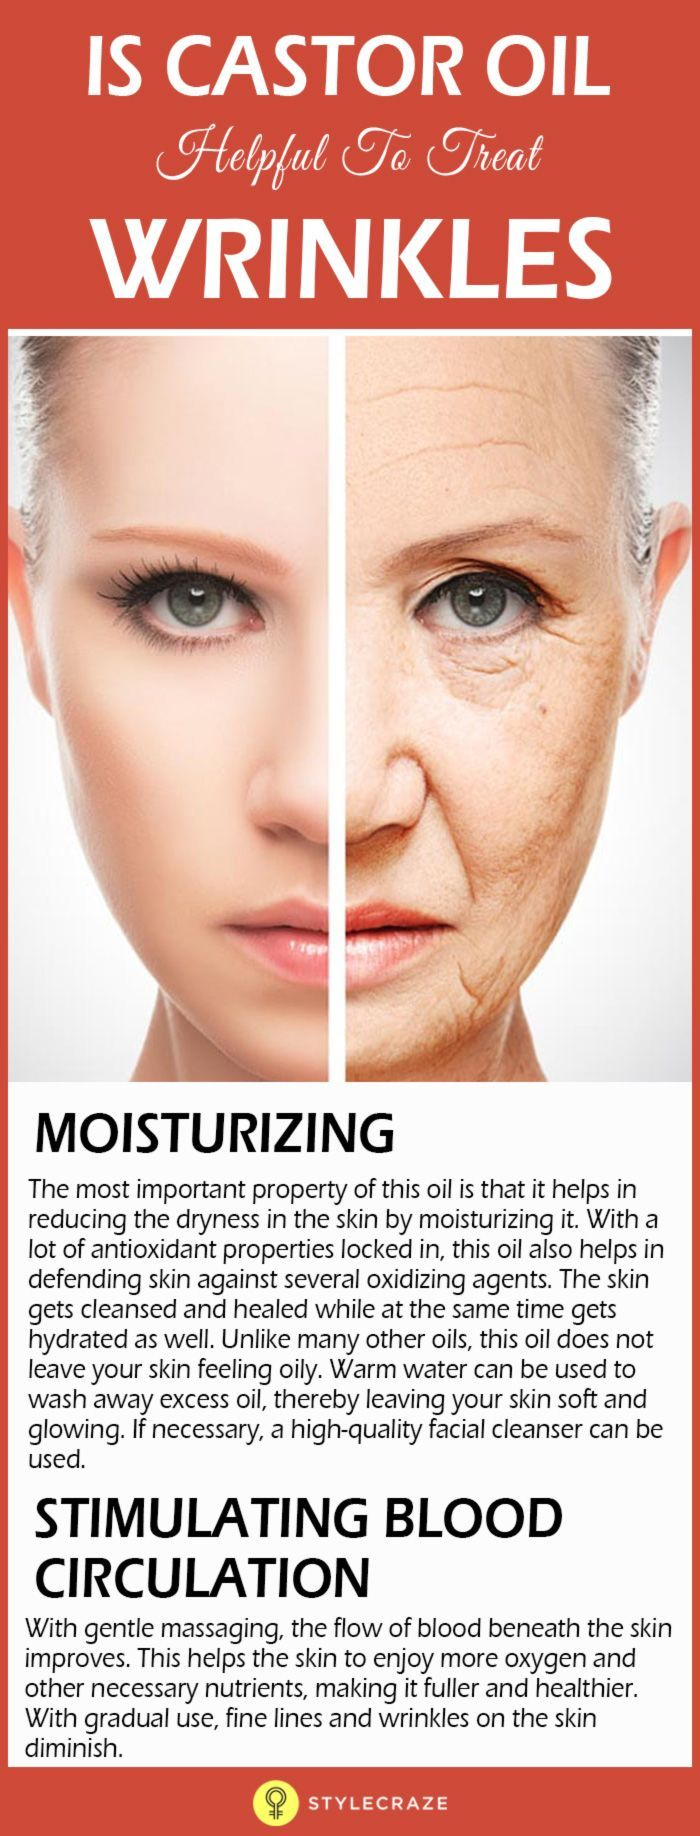 How to use castor oil to remove wrinkles healing n remedies whenever you see yourself in the mirror is it only the wrinkles that come to your attention and does that sadden and upset you solutioingenieria Images